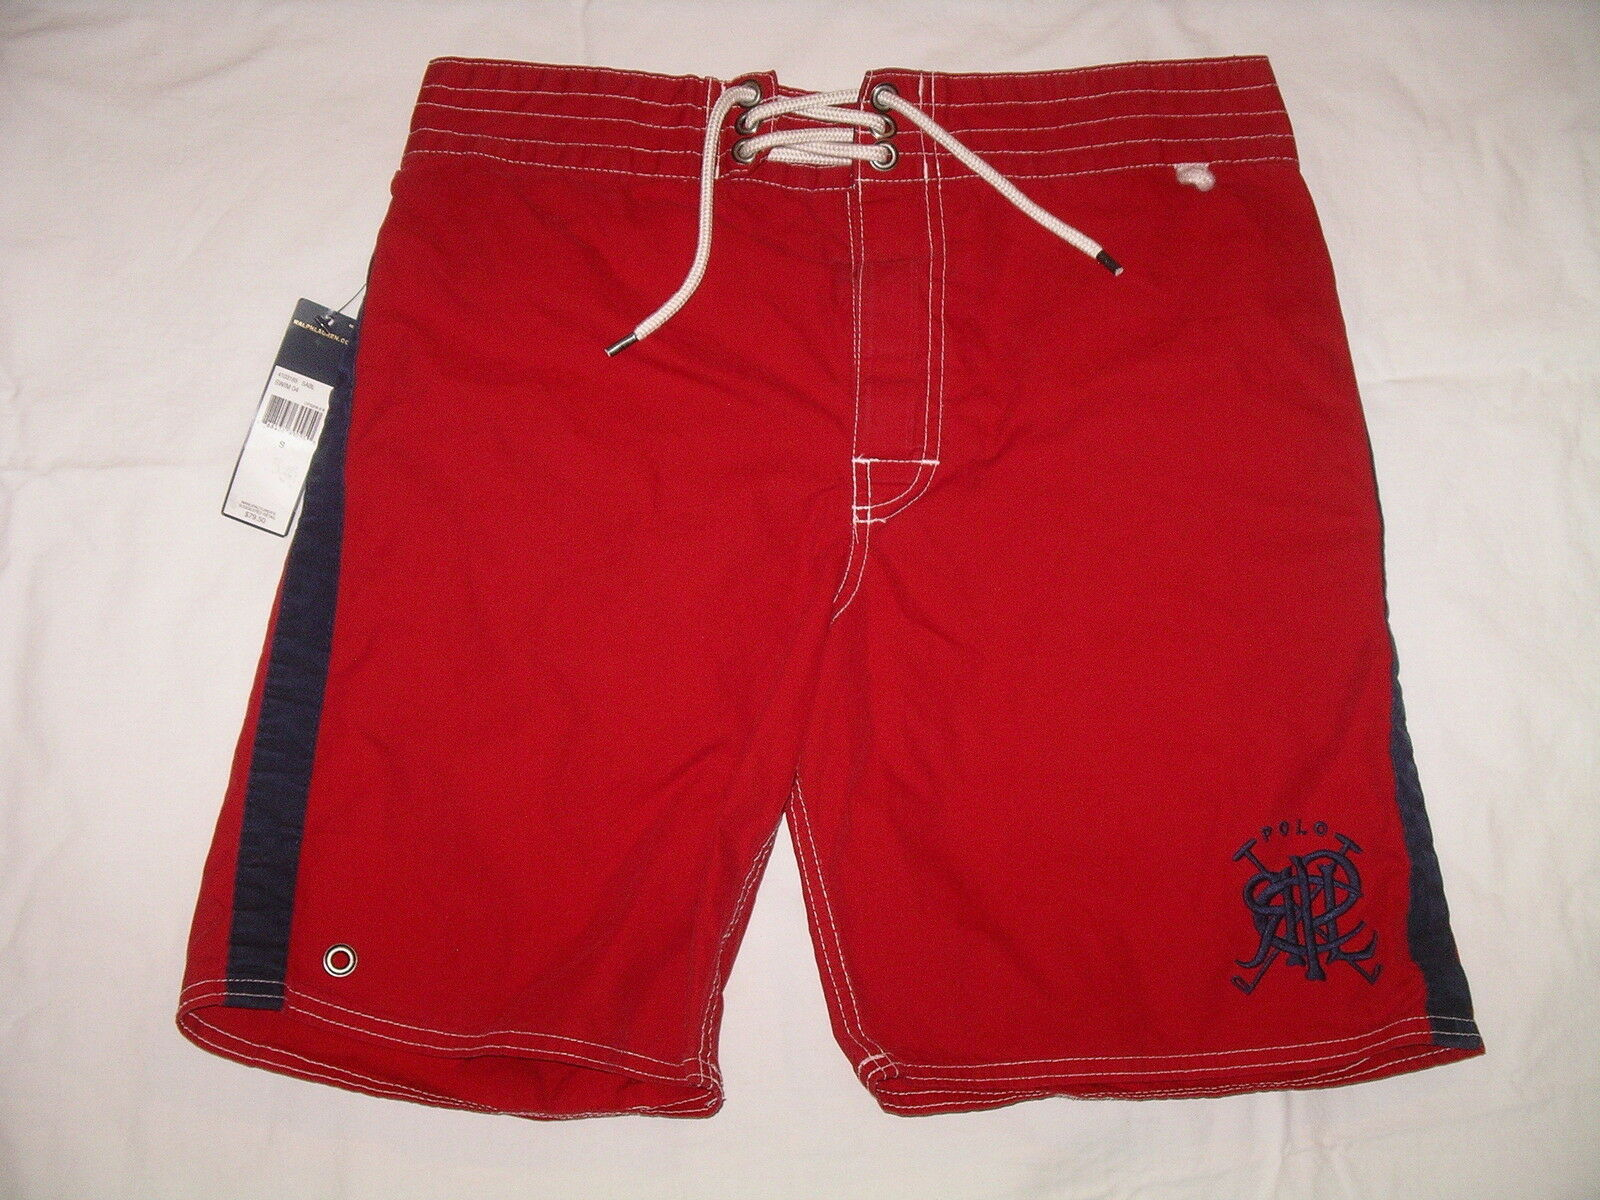 POLO RALPH LAUREN Red Cotton Blend Swim Trunks - S - NWT